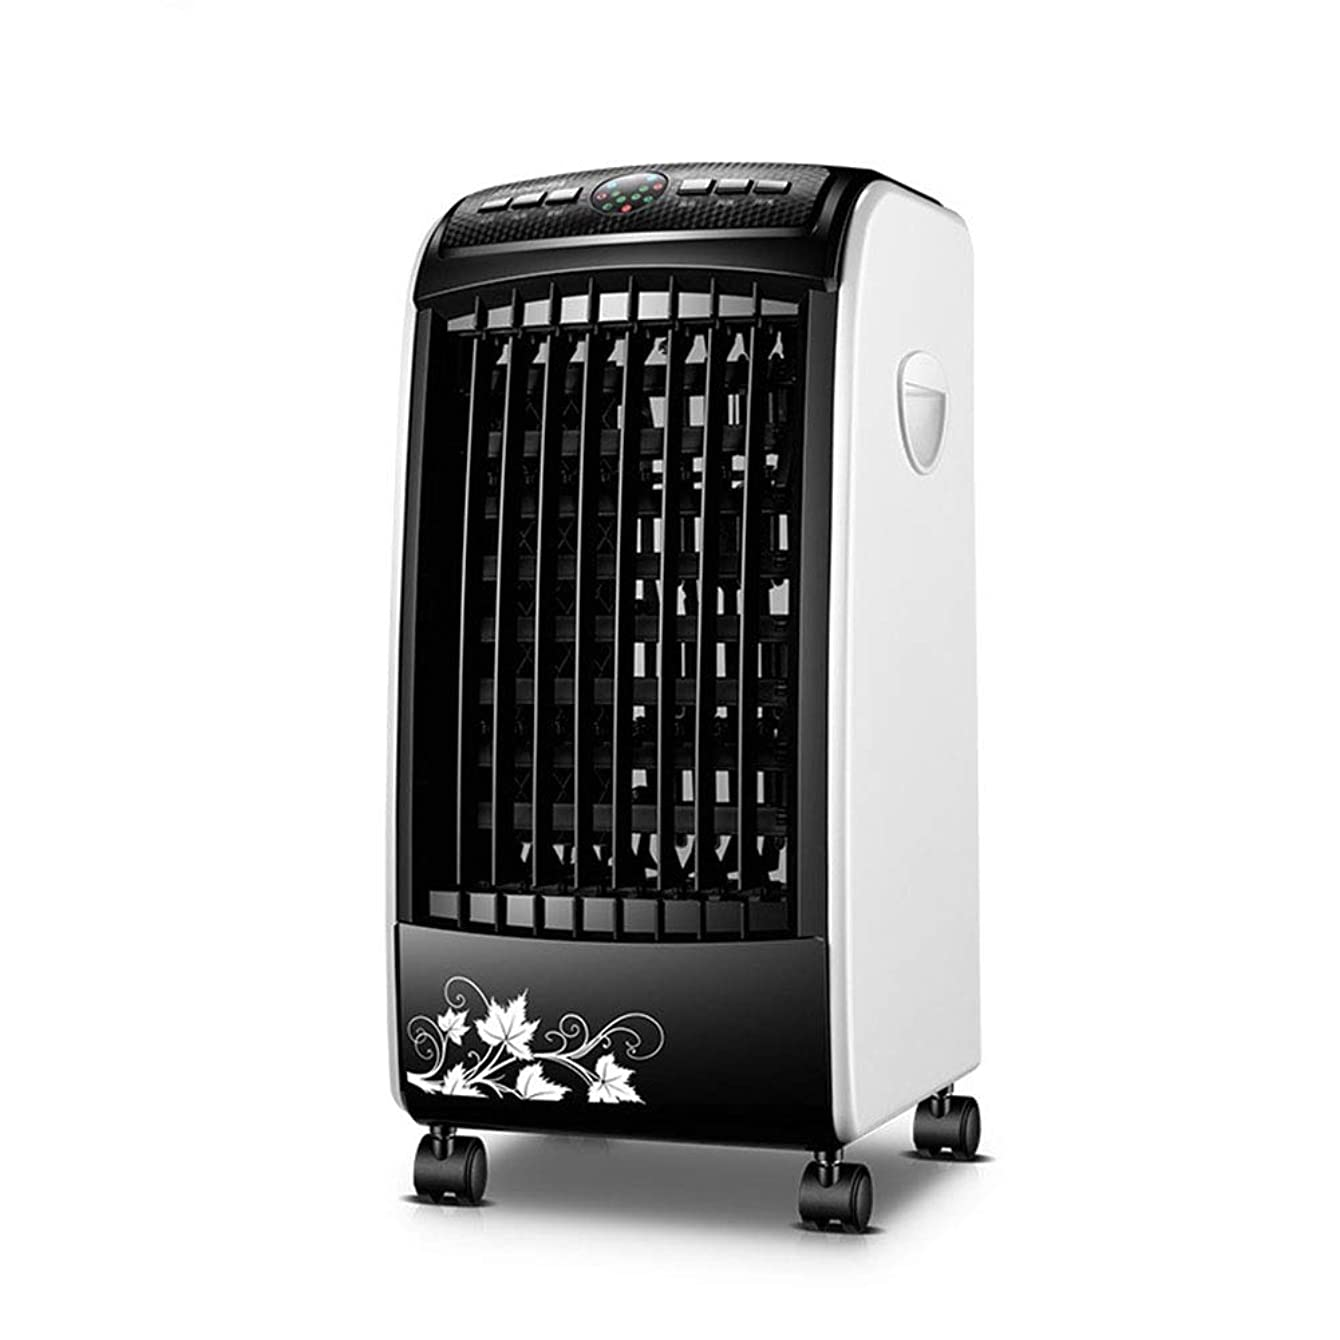 Air Cooler Evaporative Indoor Humidifier Or Vaneless Fan with Oscillation and Remote Control, Adjustable Wind Speed, Portable Small Air Conditioner